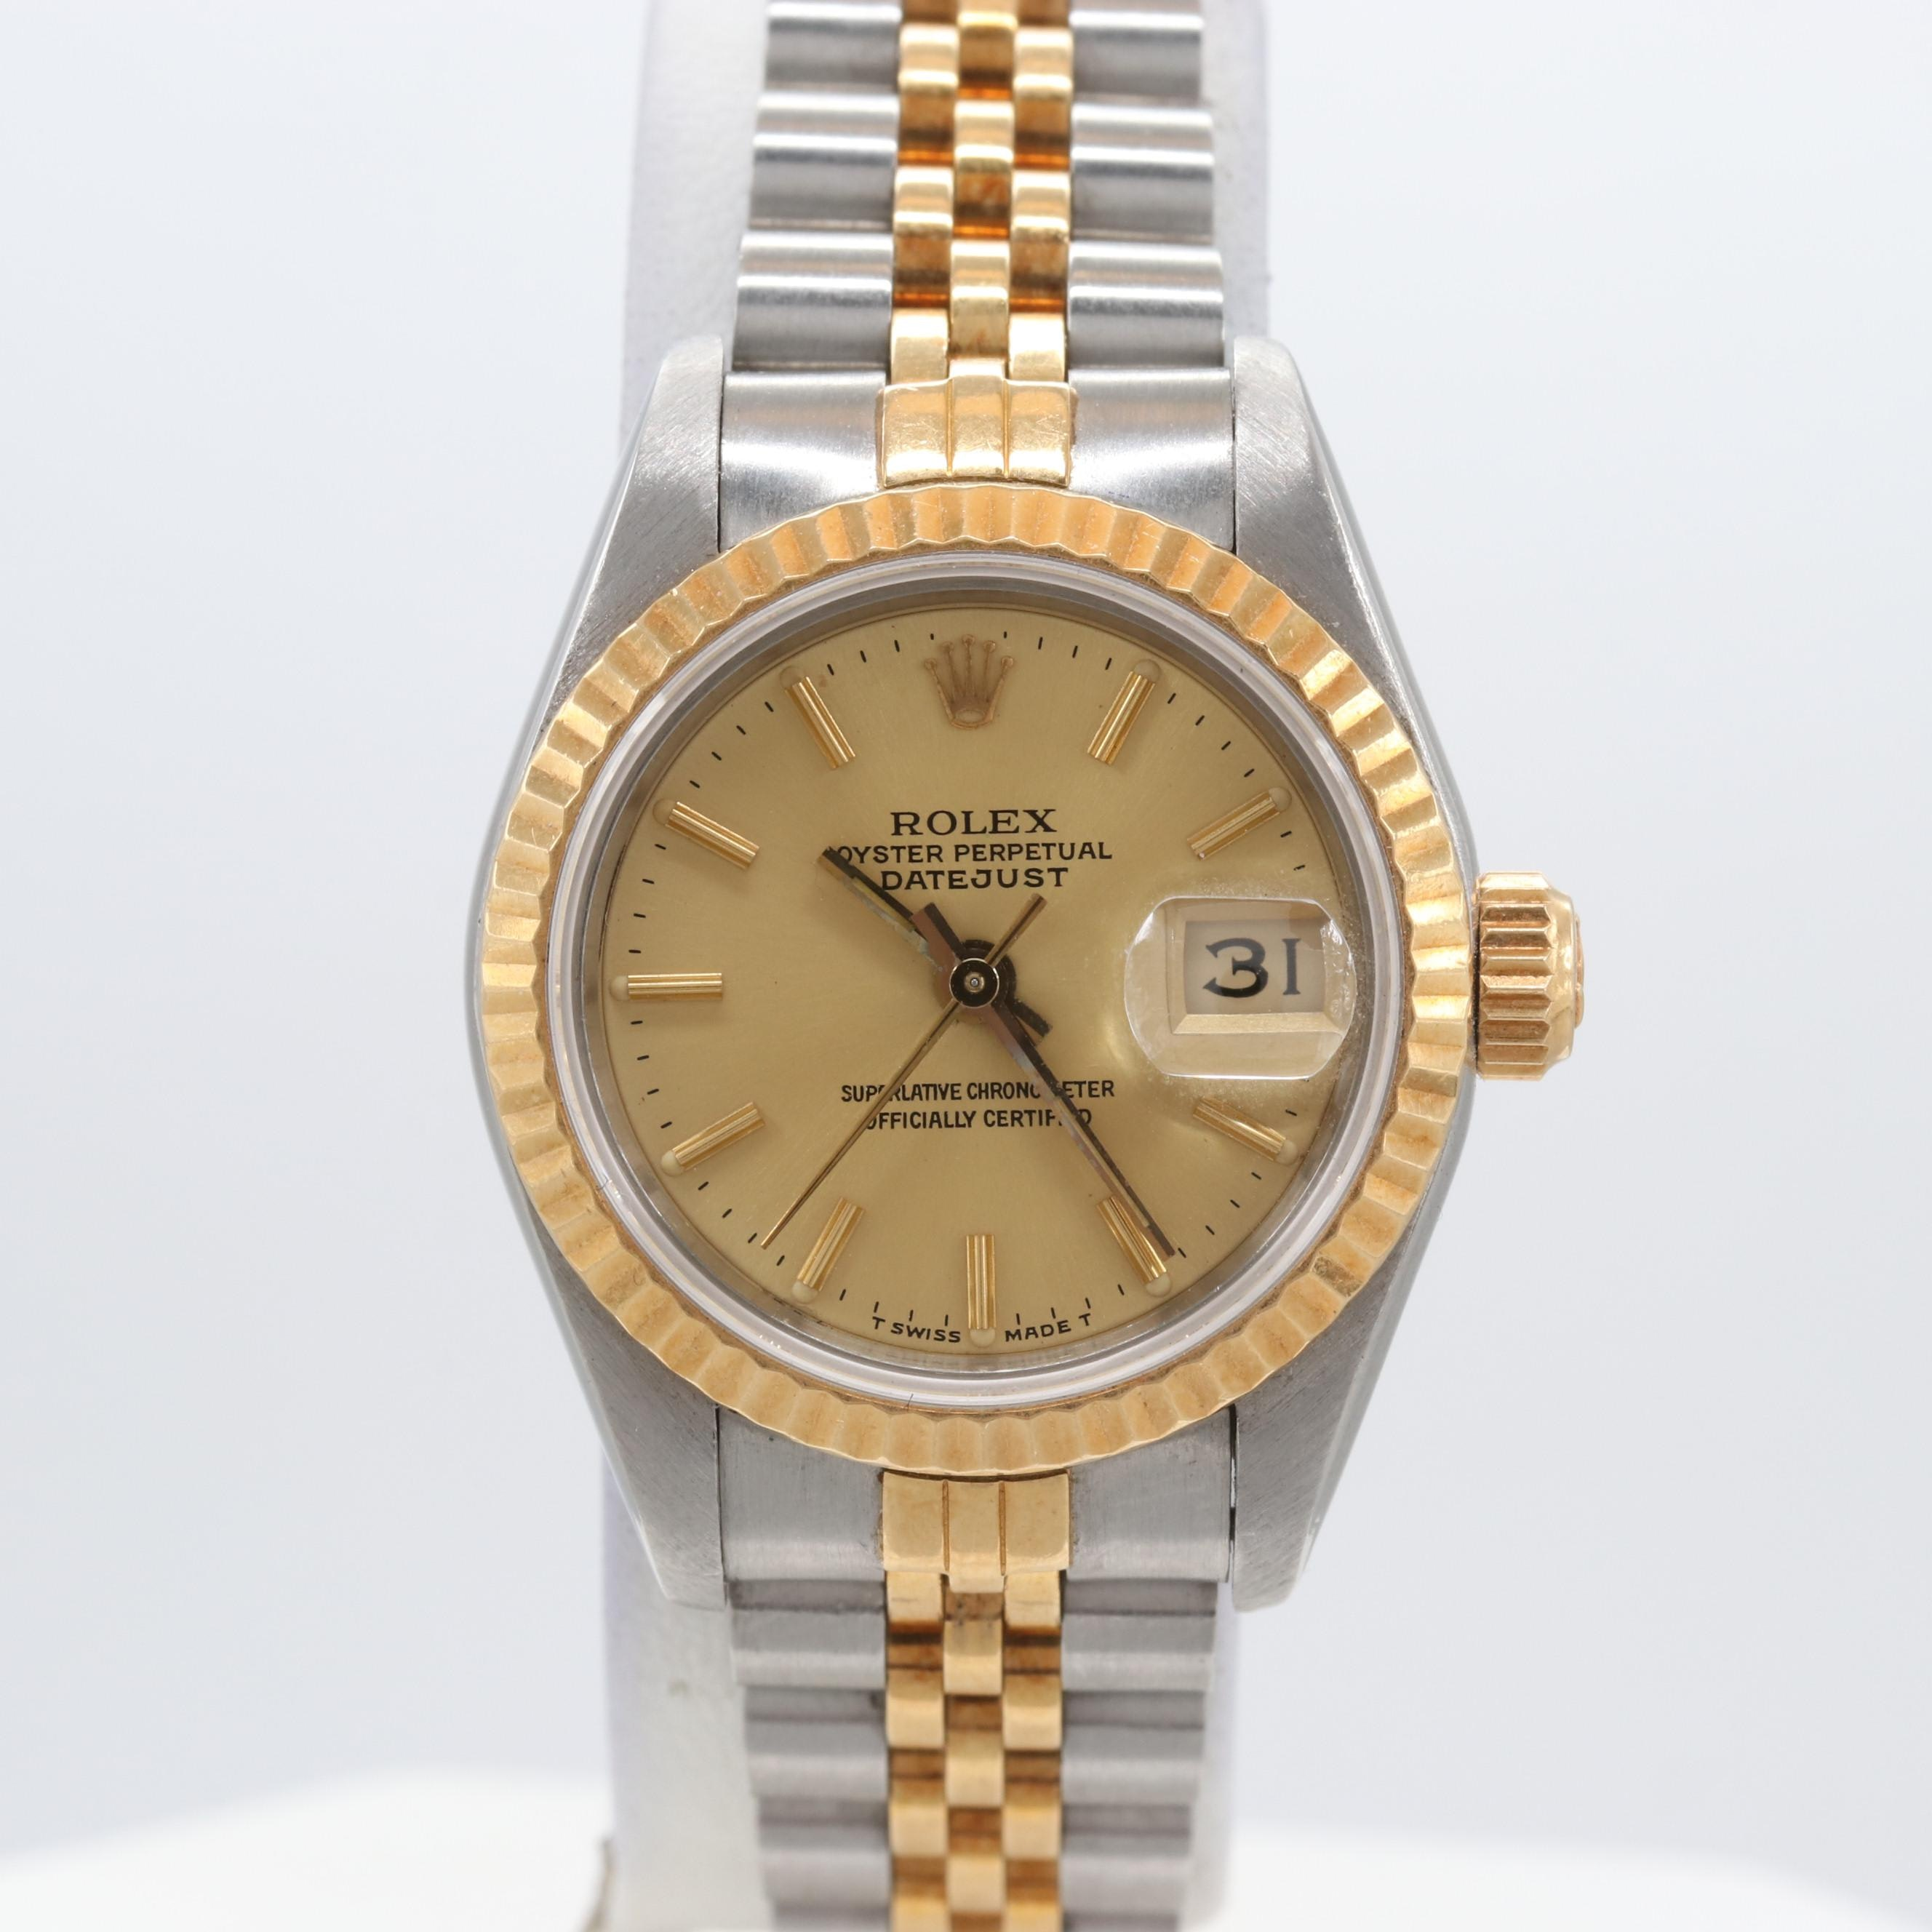 Rolex Stainless Steel and 18K Yellow Gold Datejust Wristwatch 1987